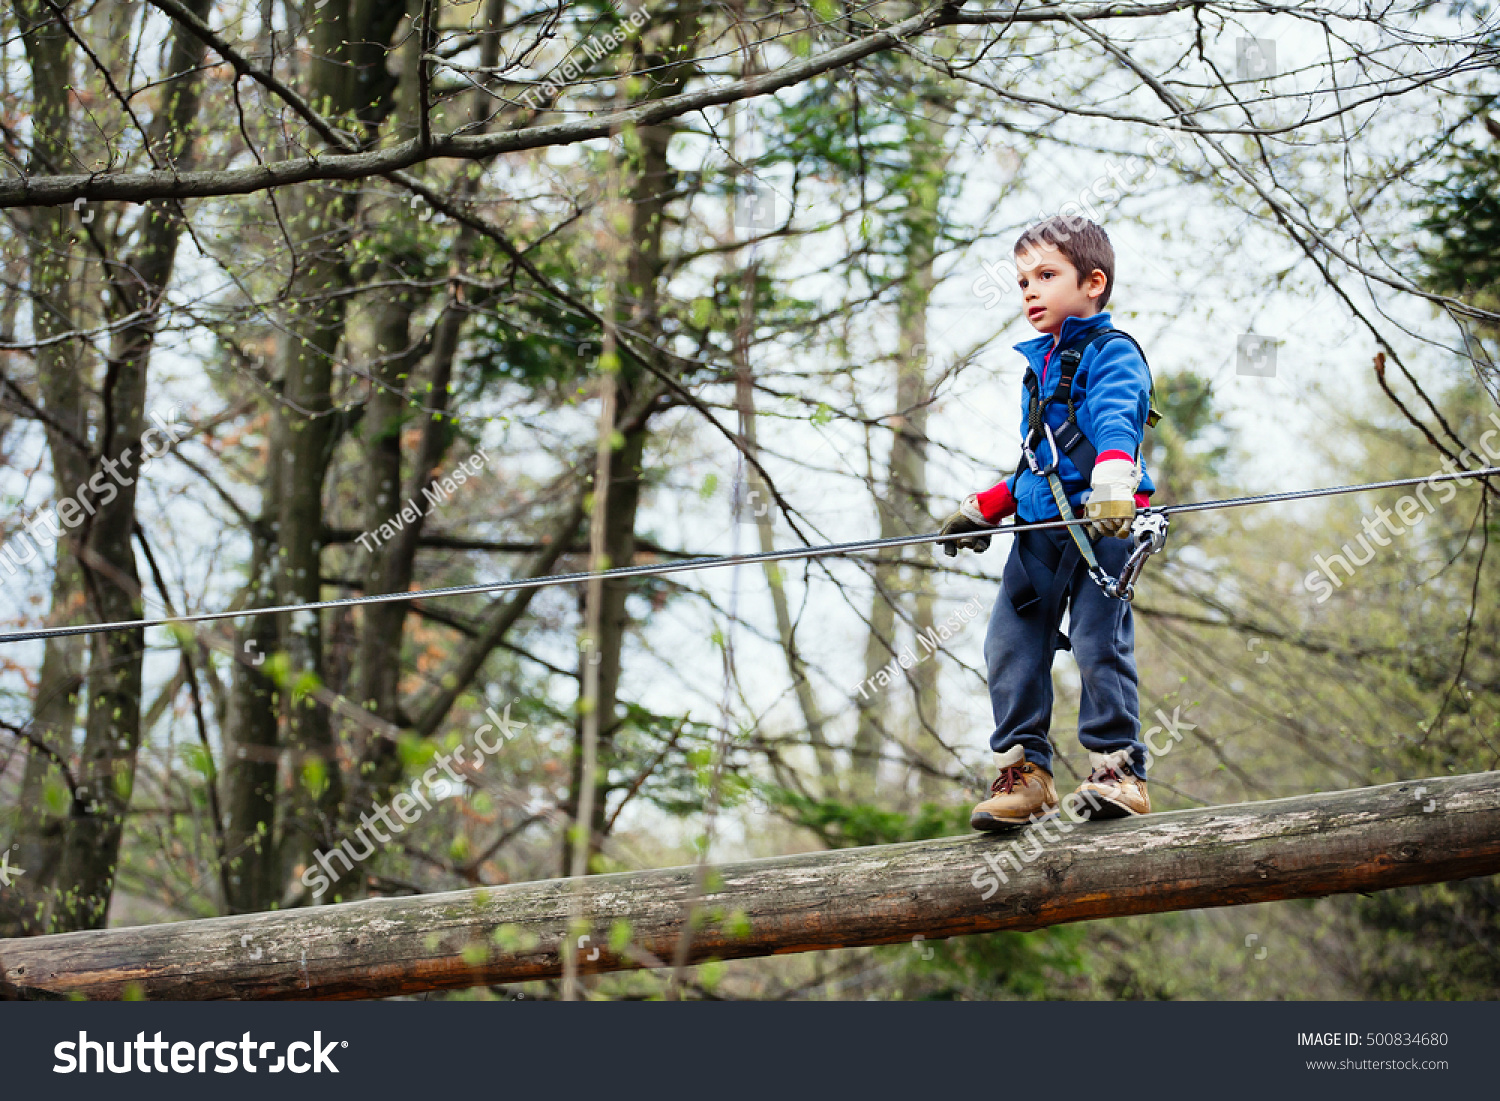 stock photo boy in harness navigating obstacle in adventure park on sunny day 500834680 boy harness navigating obstacle adventure park stock photo (edit now